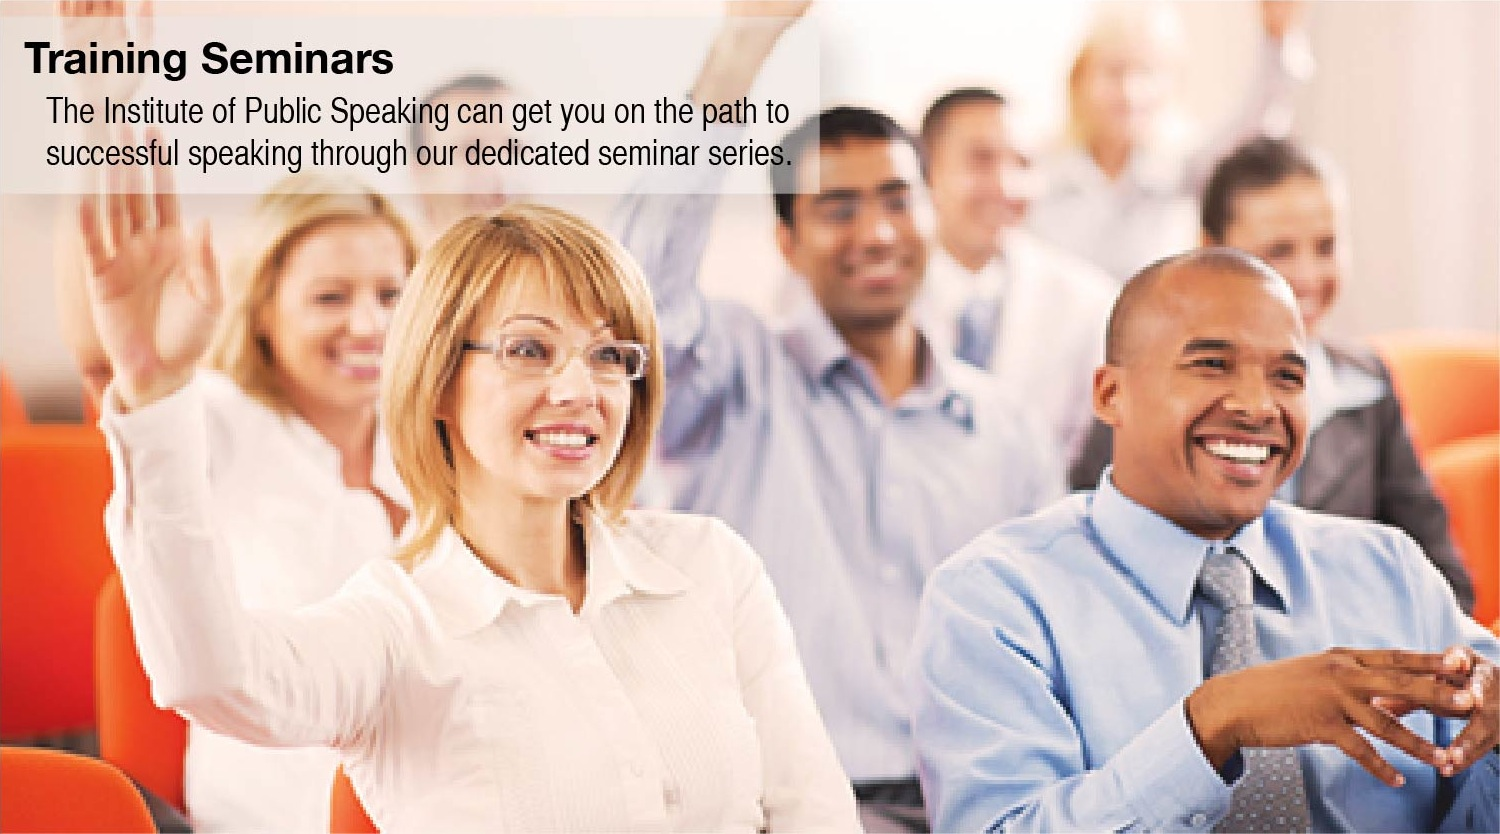 Public Speaking Training Seminars - Seminars to make your organization more effective communicators.